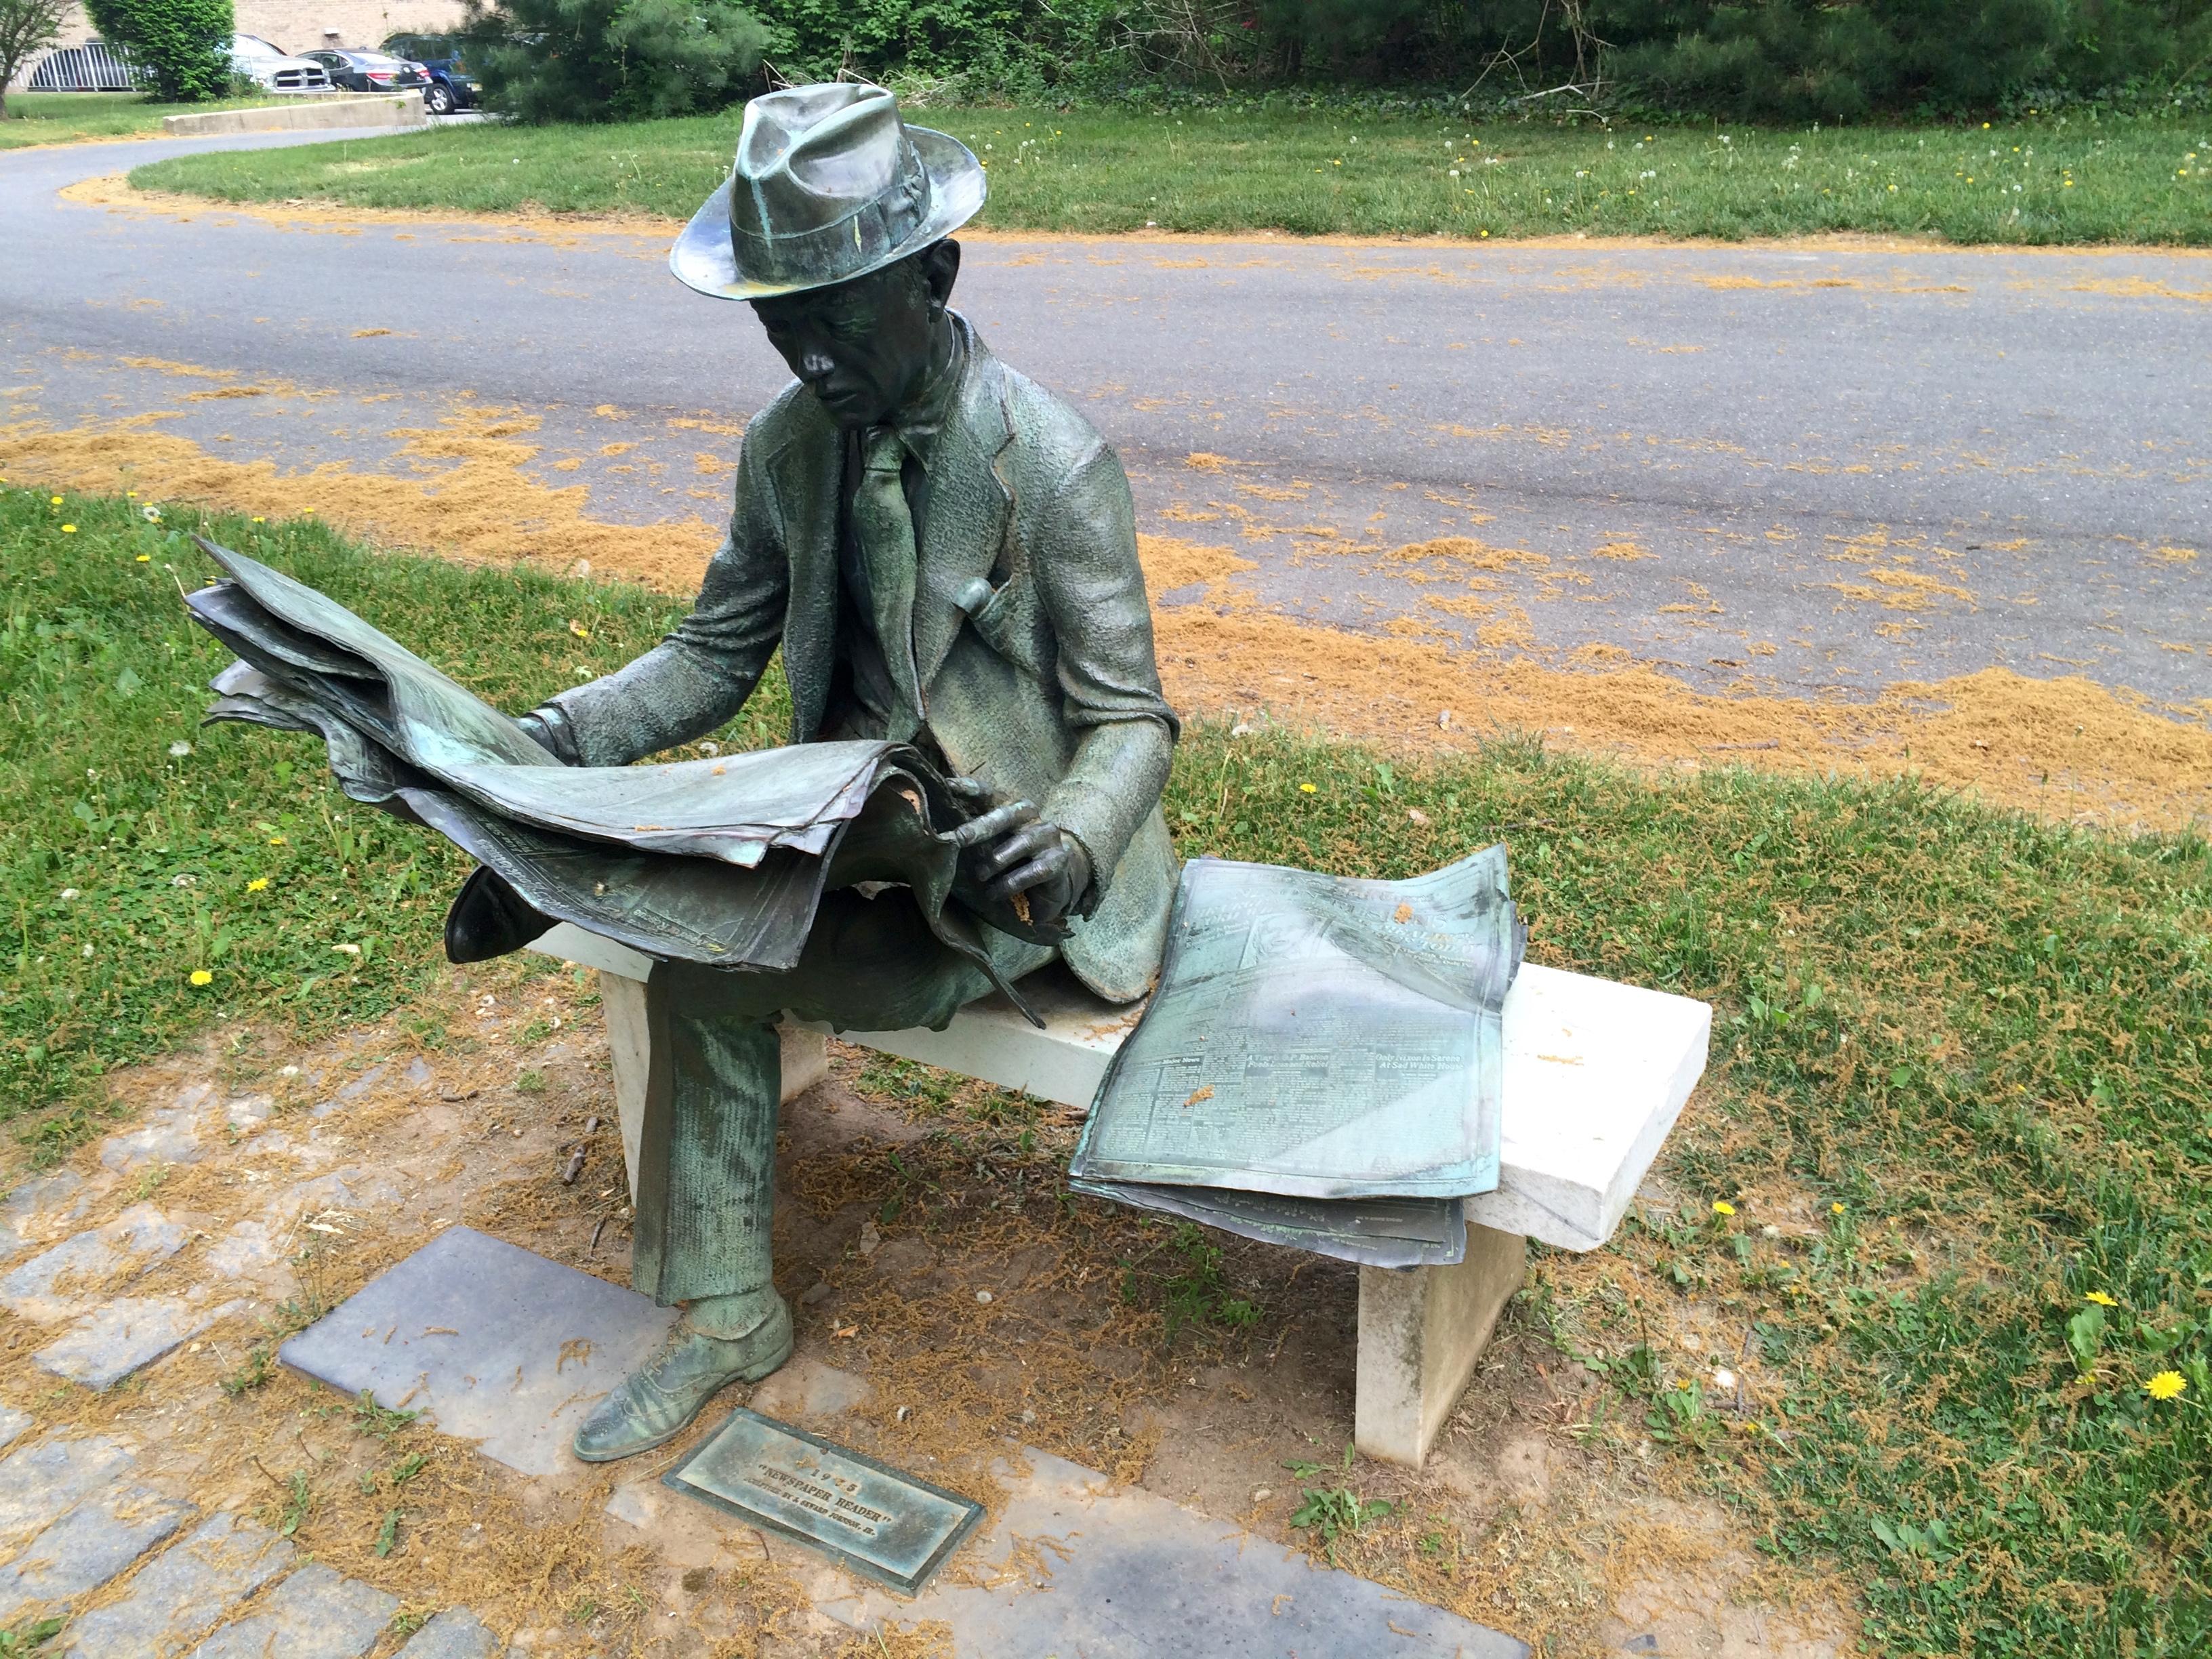 File 39 39 newspaper reader 39 39 by j seward johnson jr 1975 for John seward johnson i